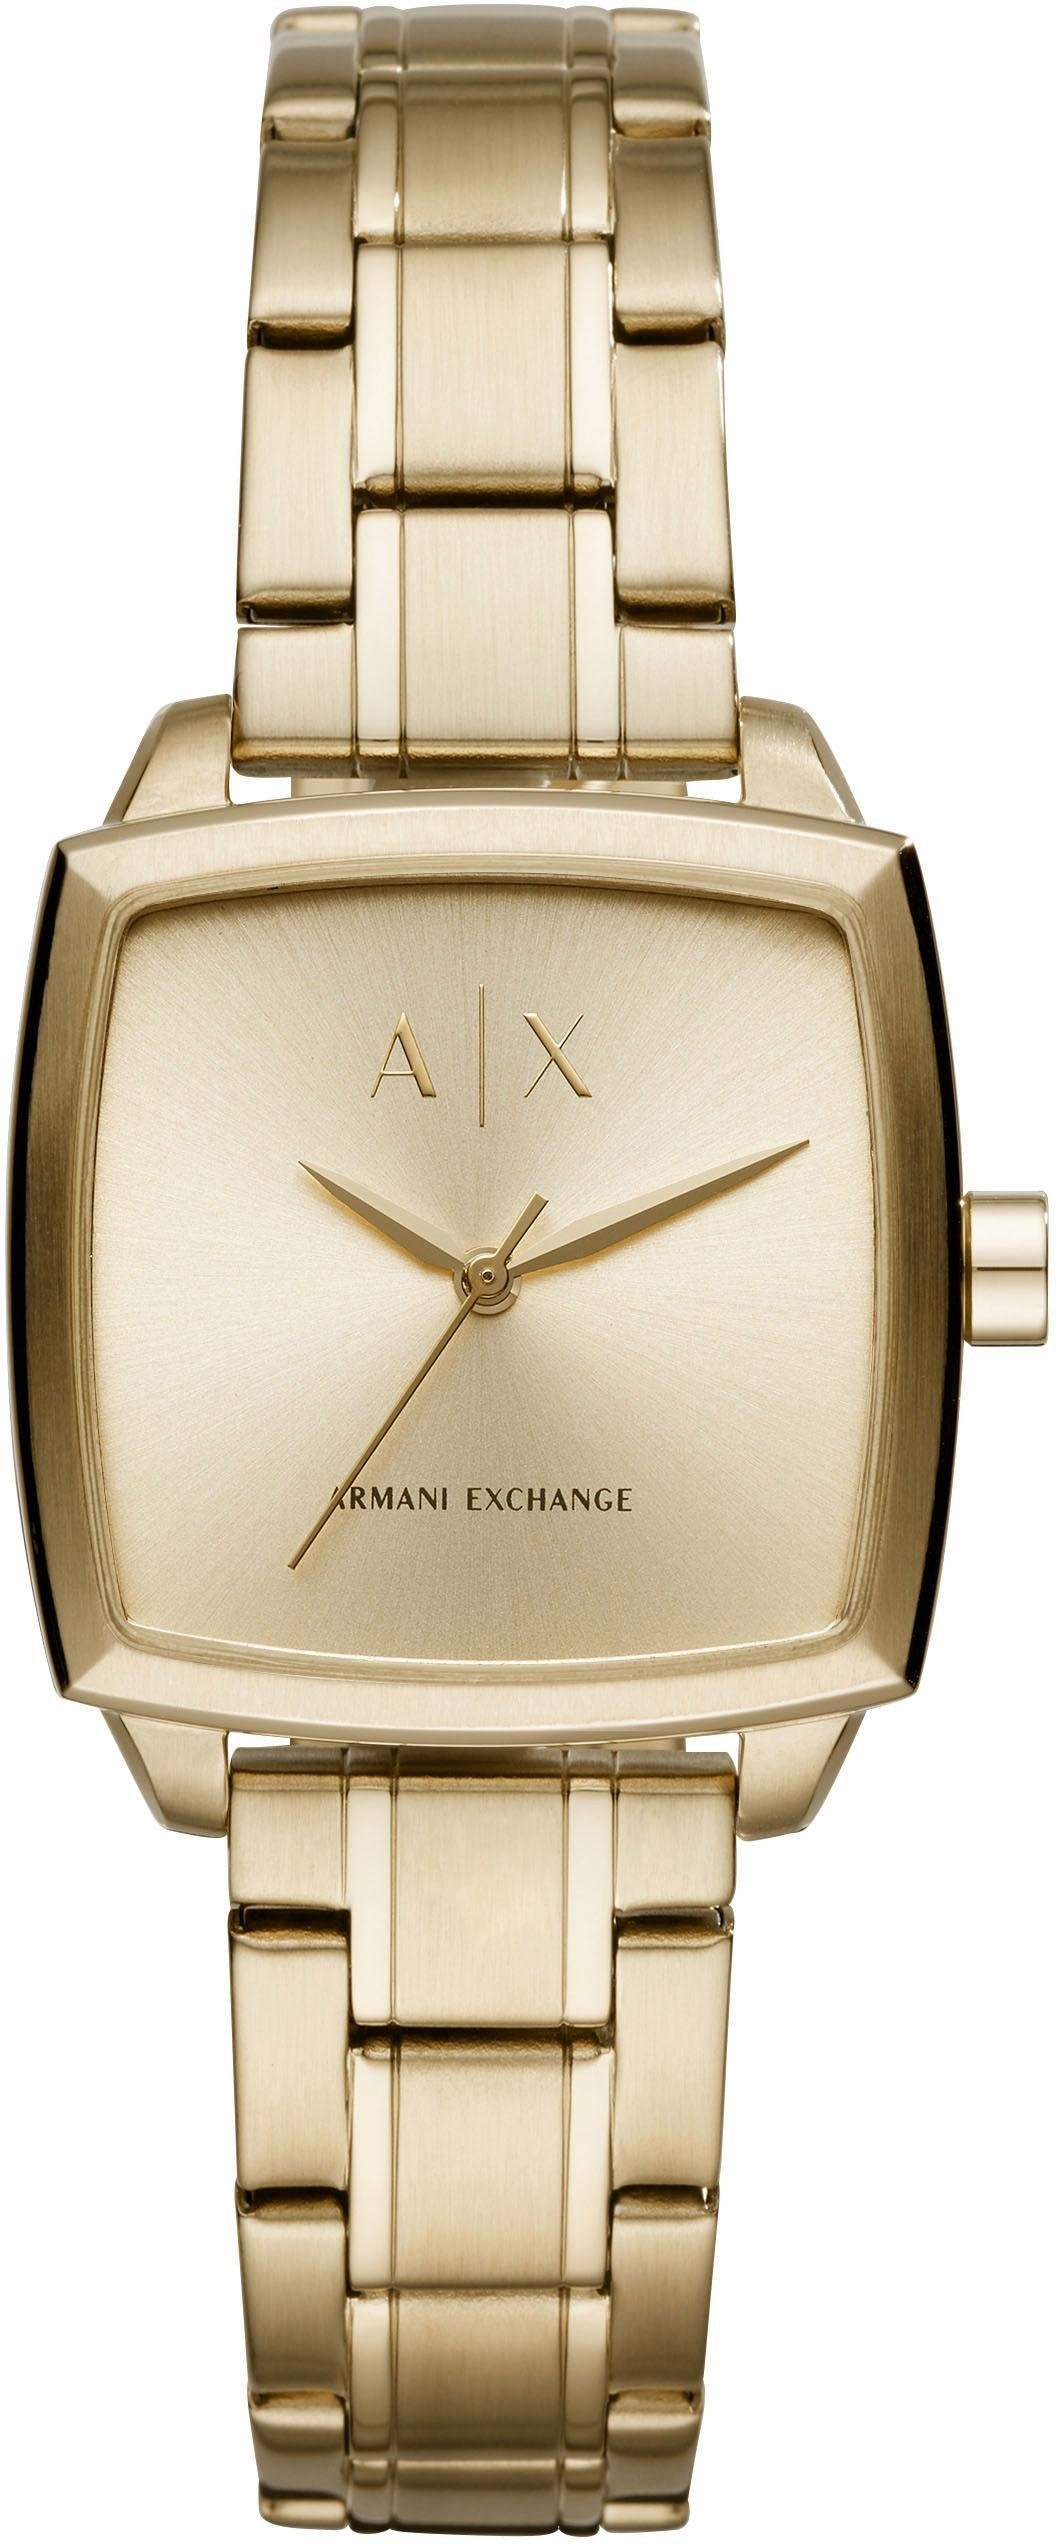 ARMANI EXCHANGE Quarzuhr »AX5452«